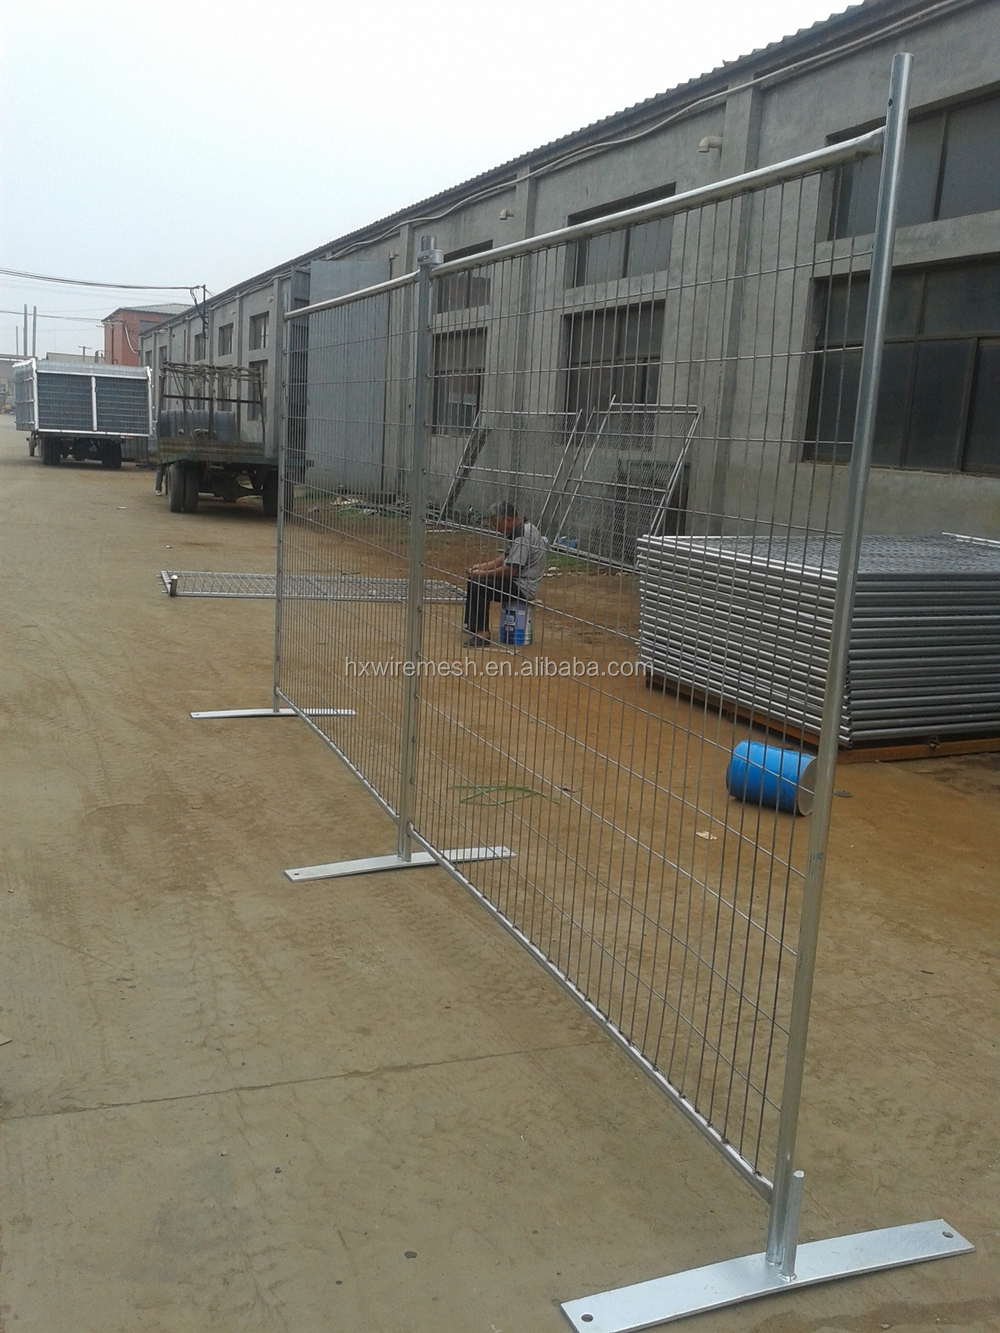 Temporary metal fence panels temp fence prices wire mesh temporary metal fence panels temp fence prices wire mesh temporary fence for boundary wall baanklon Image collections